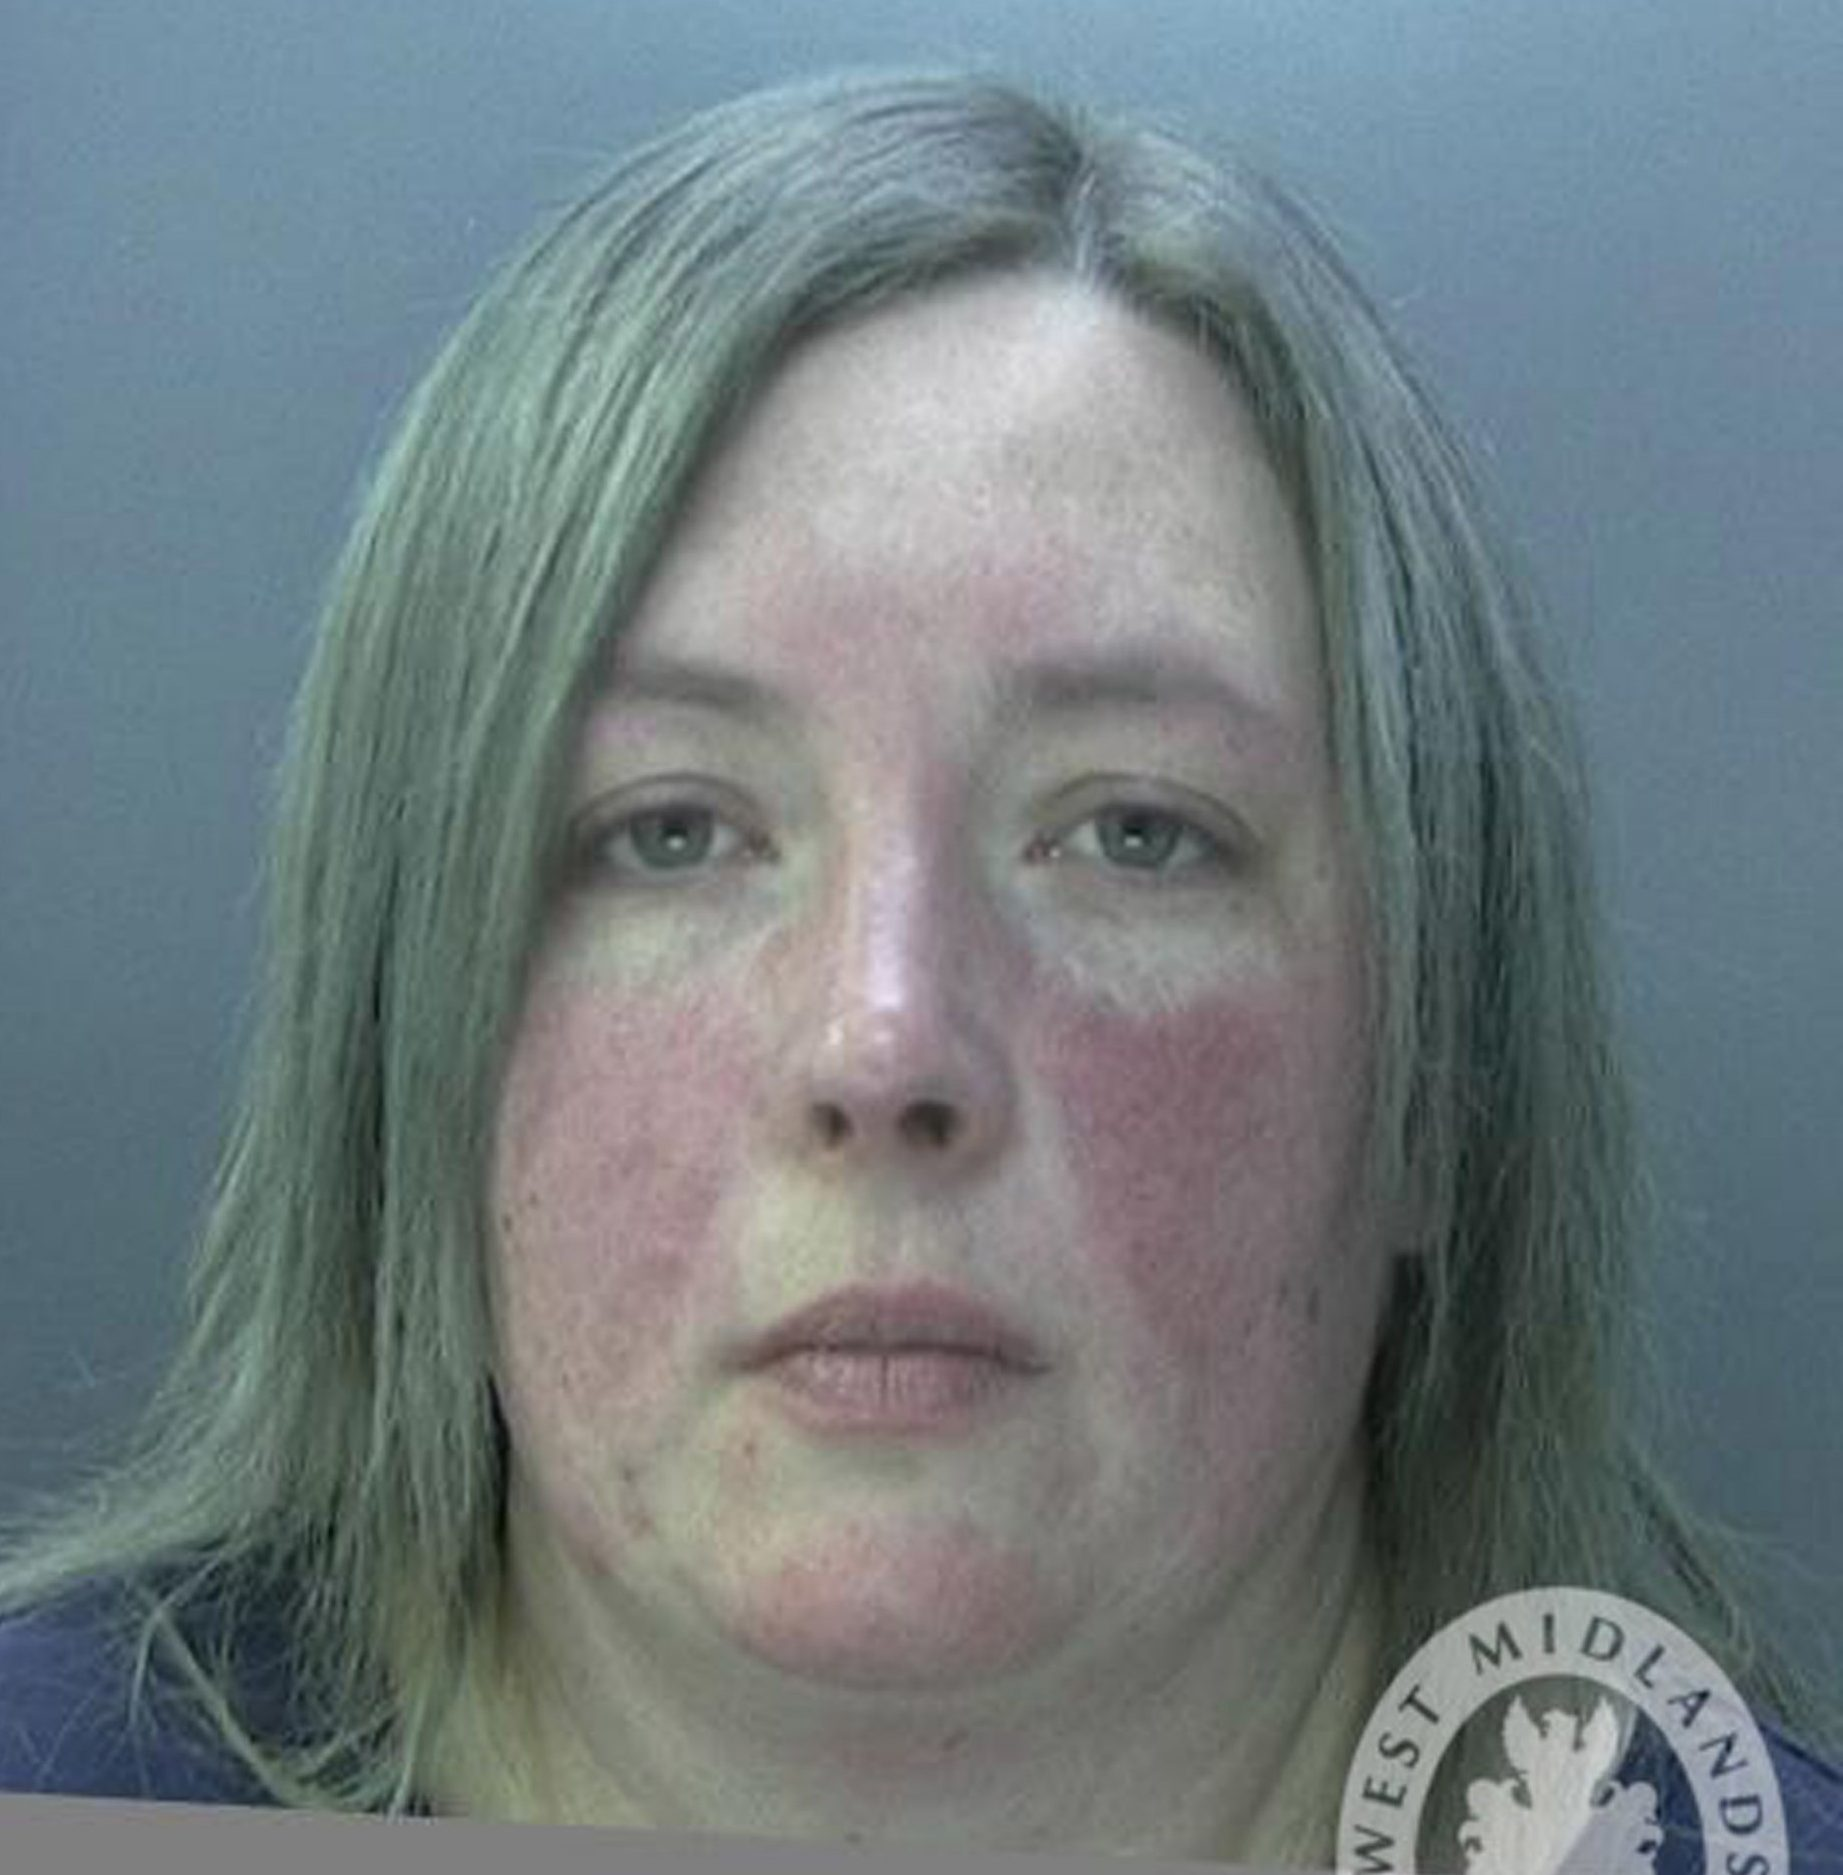 Undated handout photo issued by West Midlands Police of Gemma Farr, a prison officer who fell in love with a convicted killer, who has been jailed for smuggling steroids and phones into prison in her underwear. PRESS ASSOCIATION Photo. Issue date: Wednesday January 9, 2019. Ms Farr was found to have abused her position at HMP Dovegate in Staffordshire after bosses alerted police about her conduct in September 2017, amid rumours she had a romance with the prisoner who is serving a life sentence.See PA story COURTS Farr. Photo credit should read: West Midlands Police/PA Wire NOTE TO EDITORS: This handout photo may only be used in for editorial reporting purposes for the contemporaneous illustration of events, things or the people in the image or facts mentioned in the caption. Reuse of the picture may require further permission from the copyright holder.